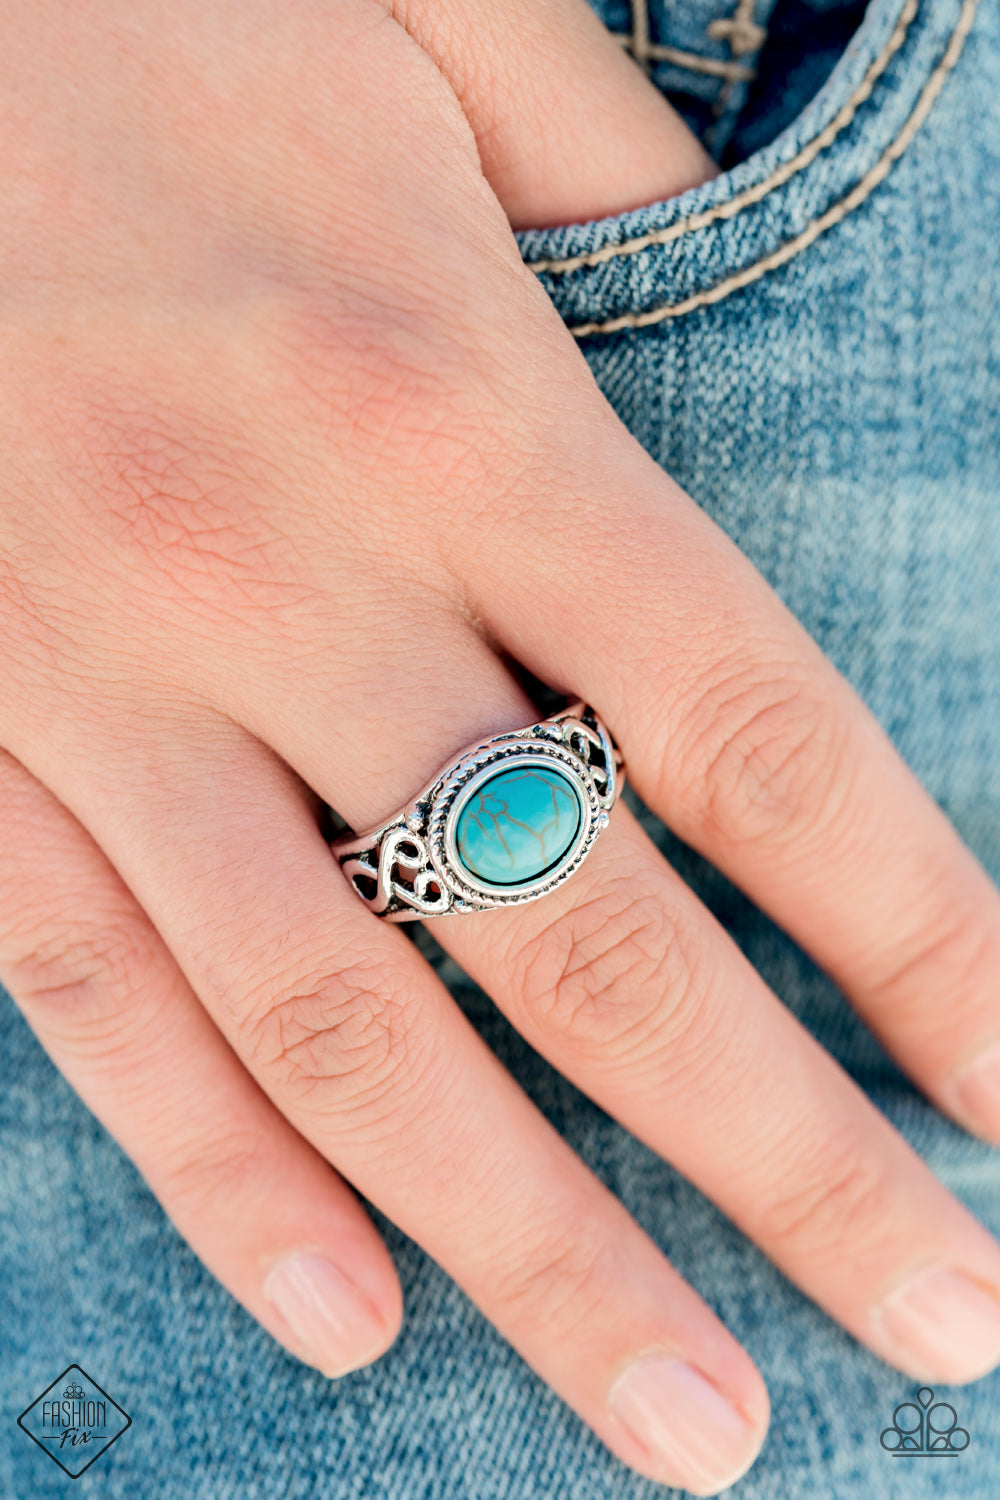 Paparazzi Set In Stone Blue Turquoise Ring Trend Blend